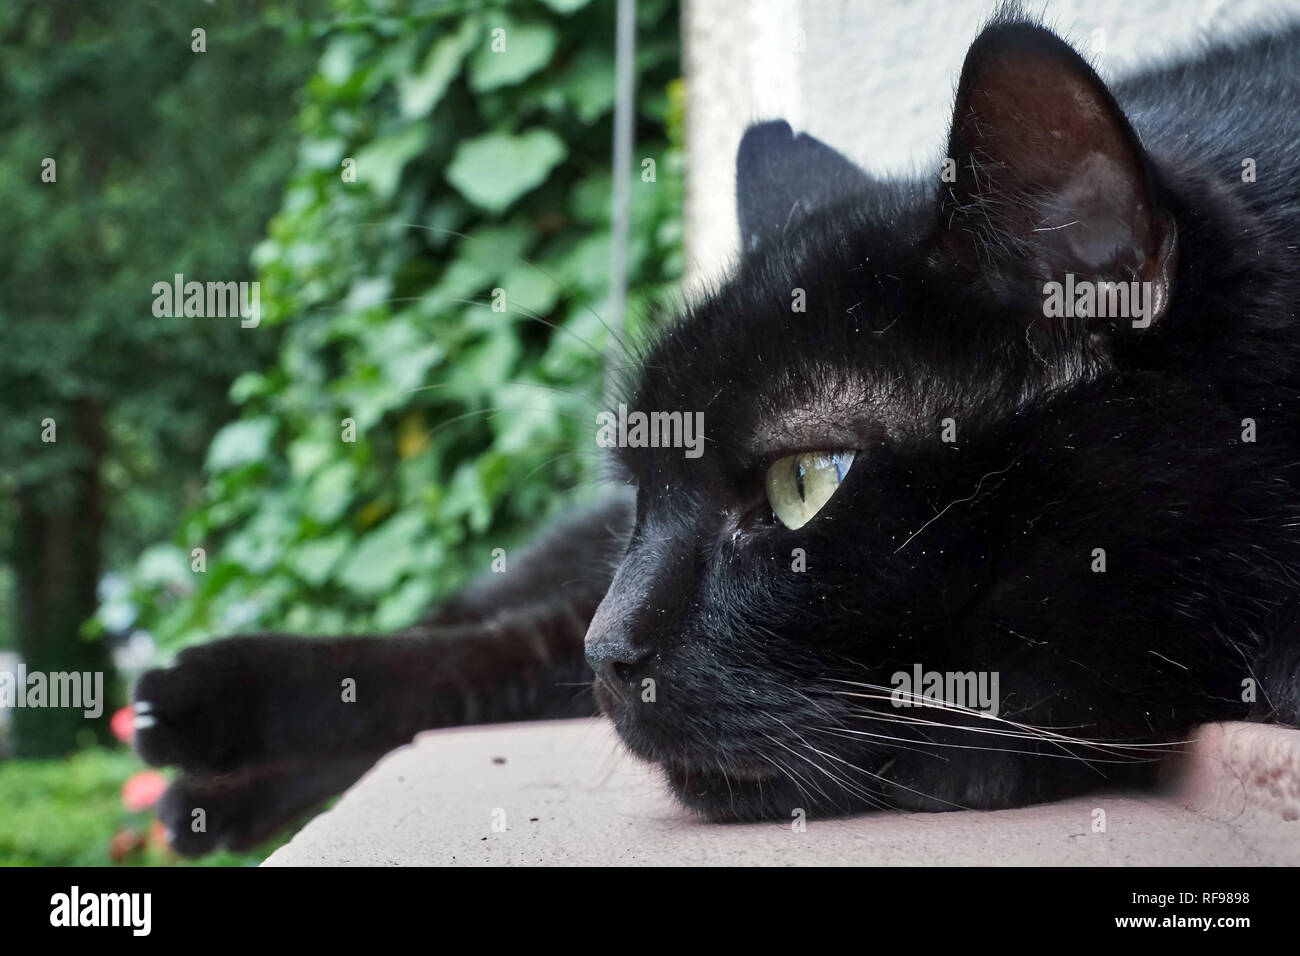 Black cat in relaxed pose - Stock Image